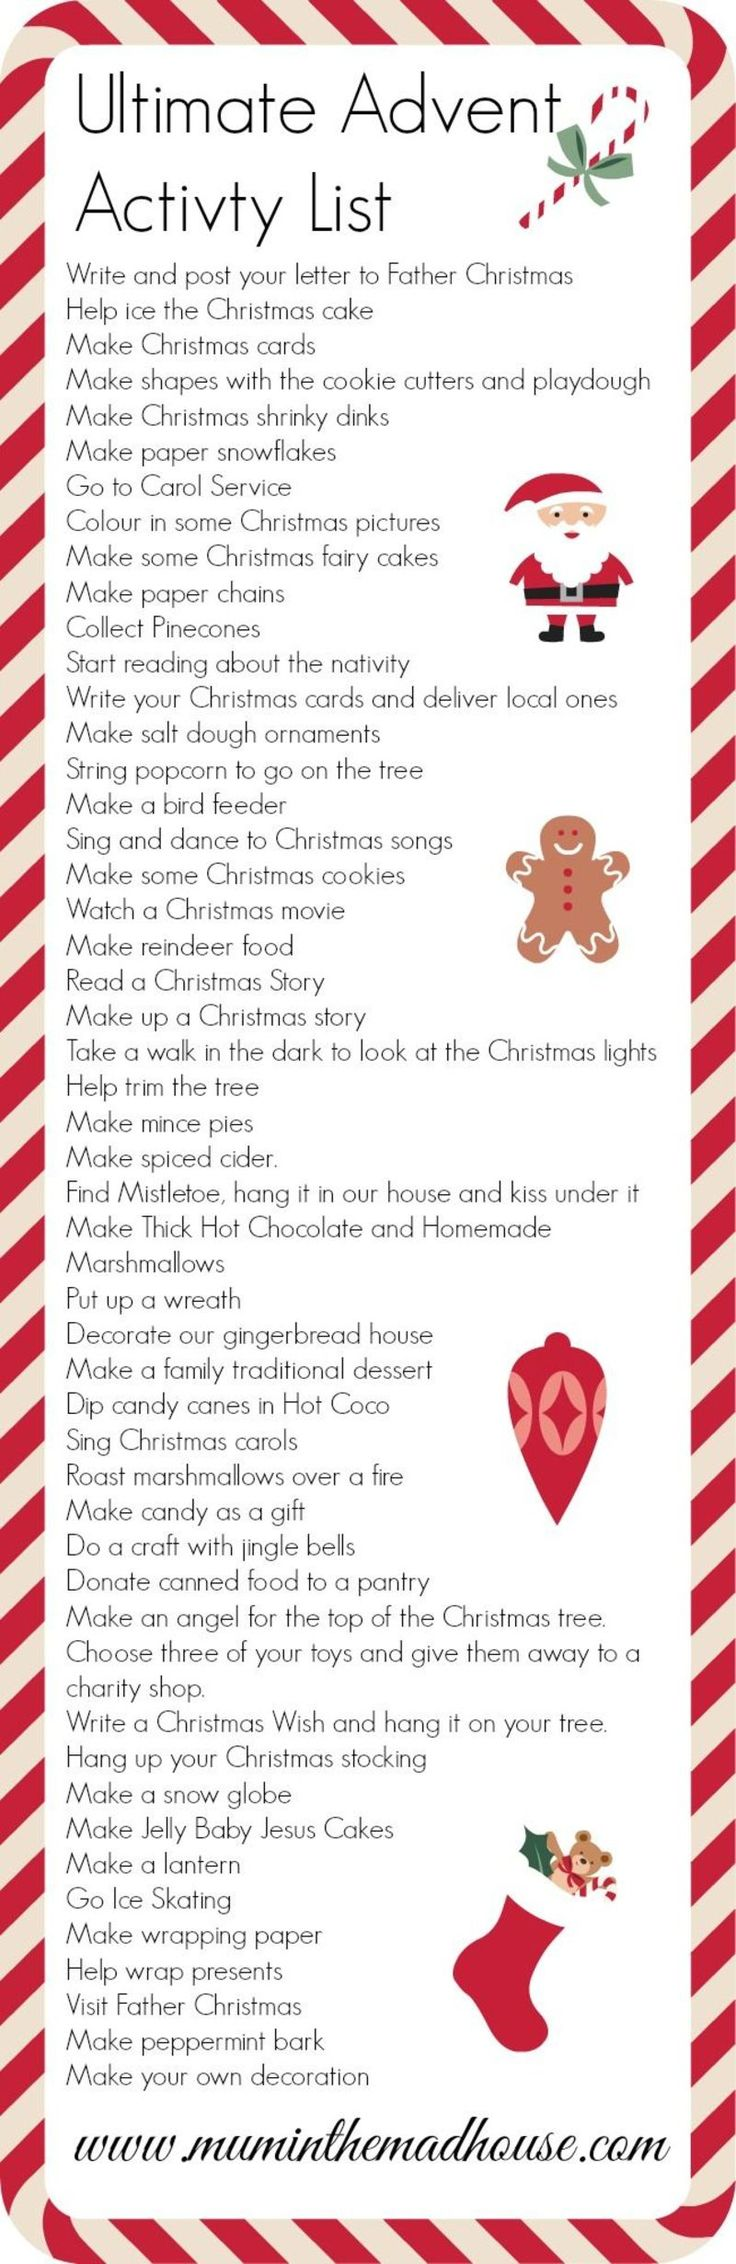 Reverse Advent Calendar Ideas : Best advent ideas images on pinterest merry